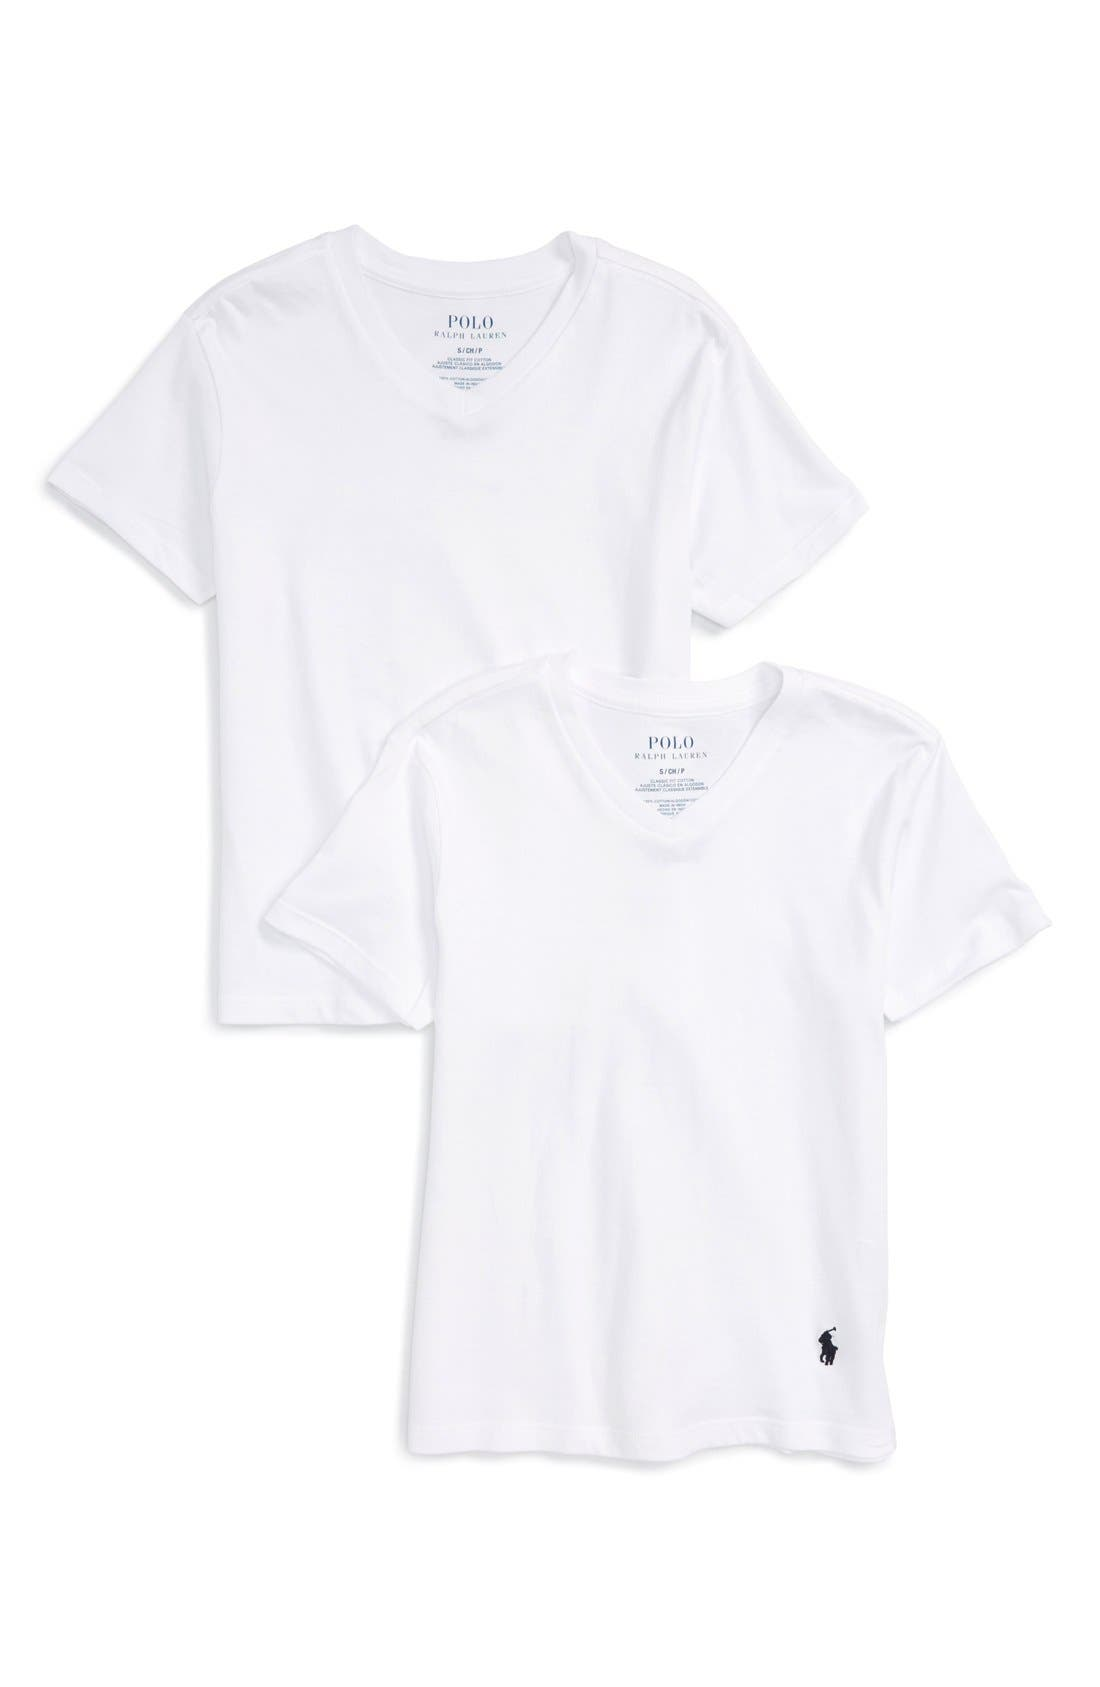 Polo Ralph Lauren V-Neck T-Shirts (2-Pack) (Big Boys)